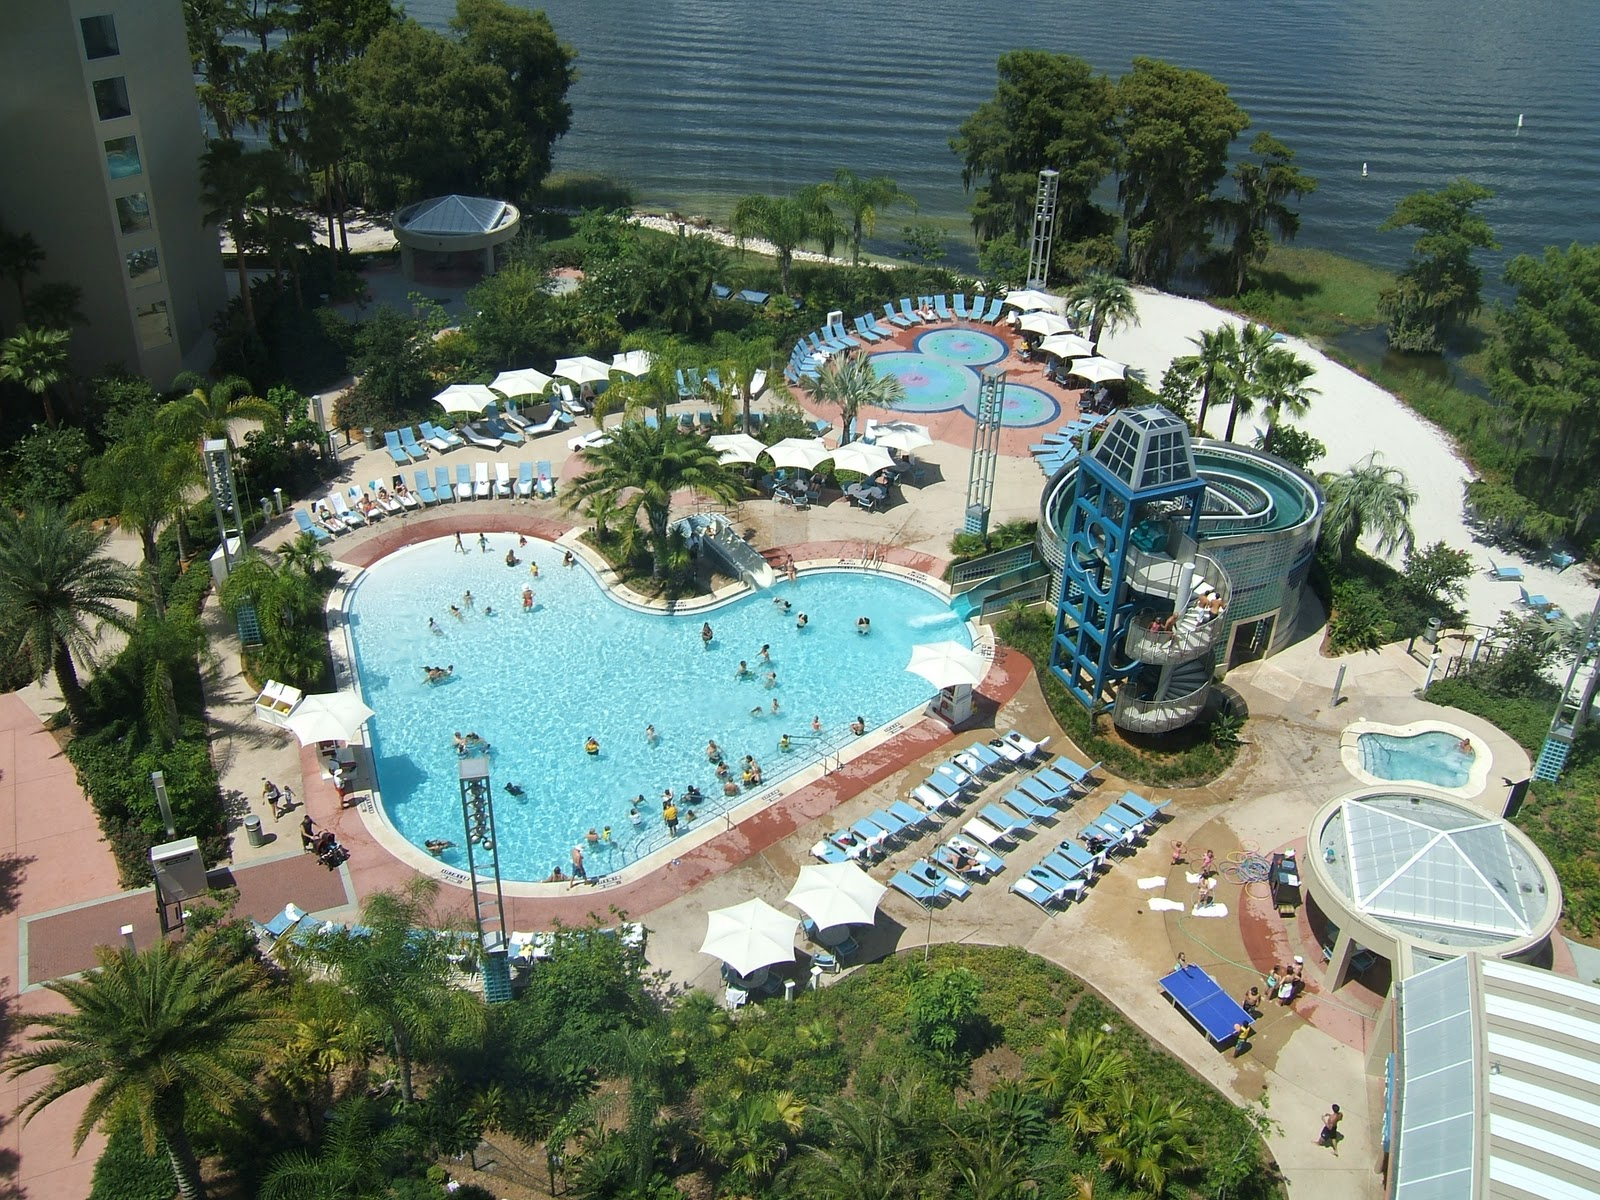 Digital Disney World Ddw Pic 74 Bay Lake Tower Pool